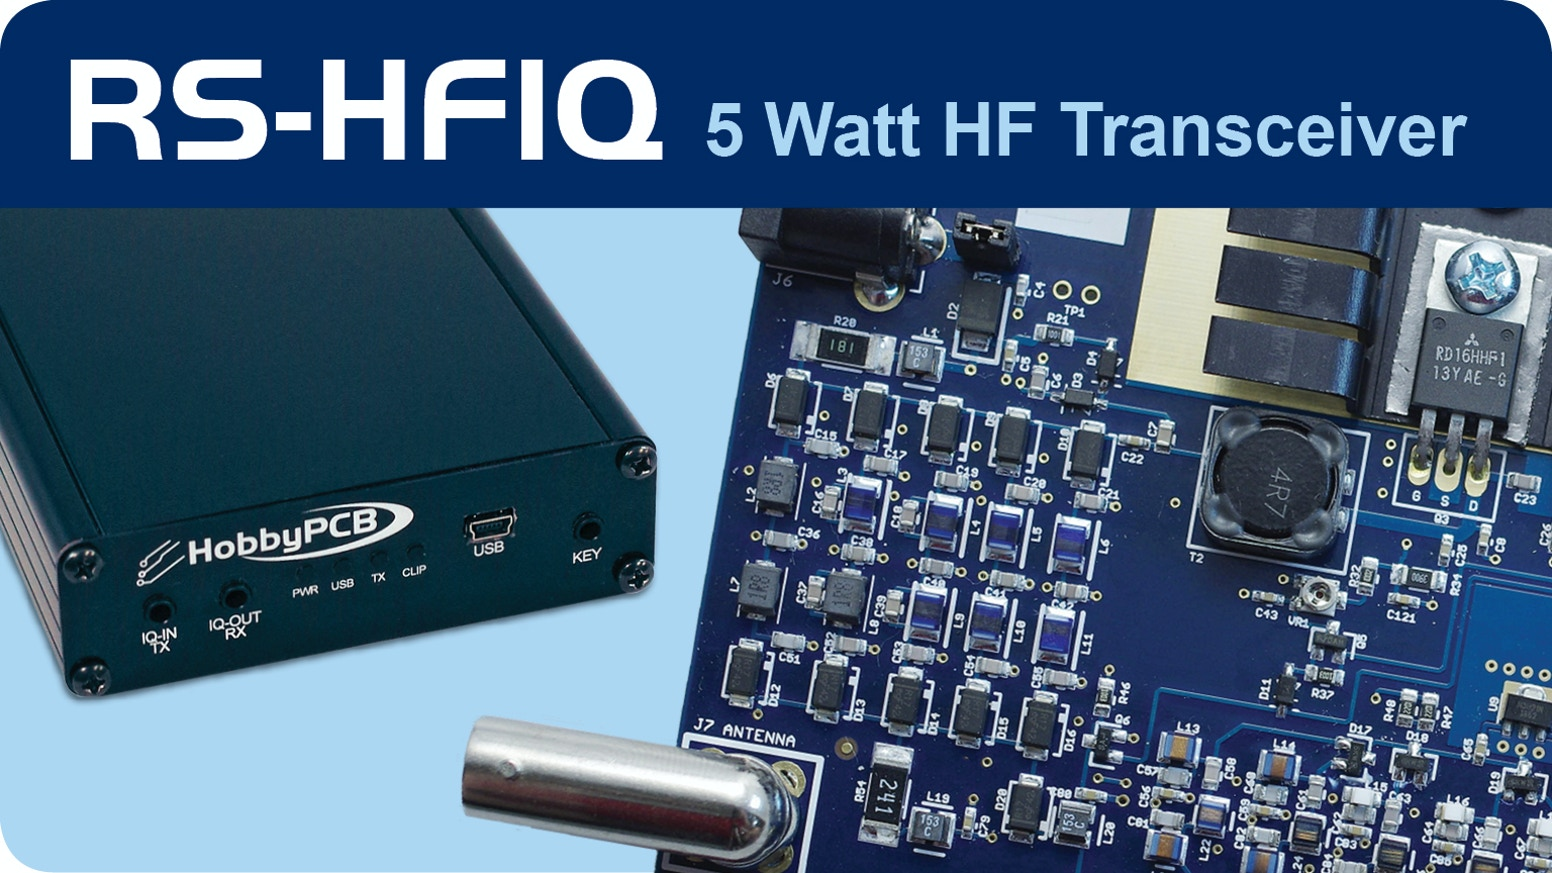 RS-HFIQ 5W Software Defined Radio (SDR) Tranceiver by